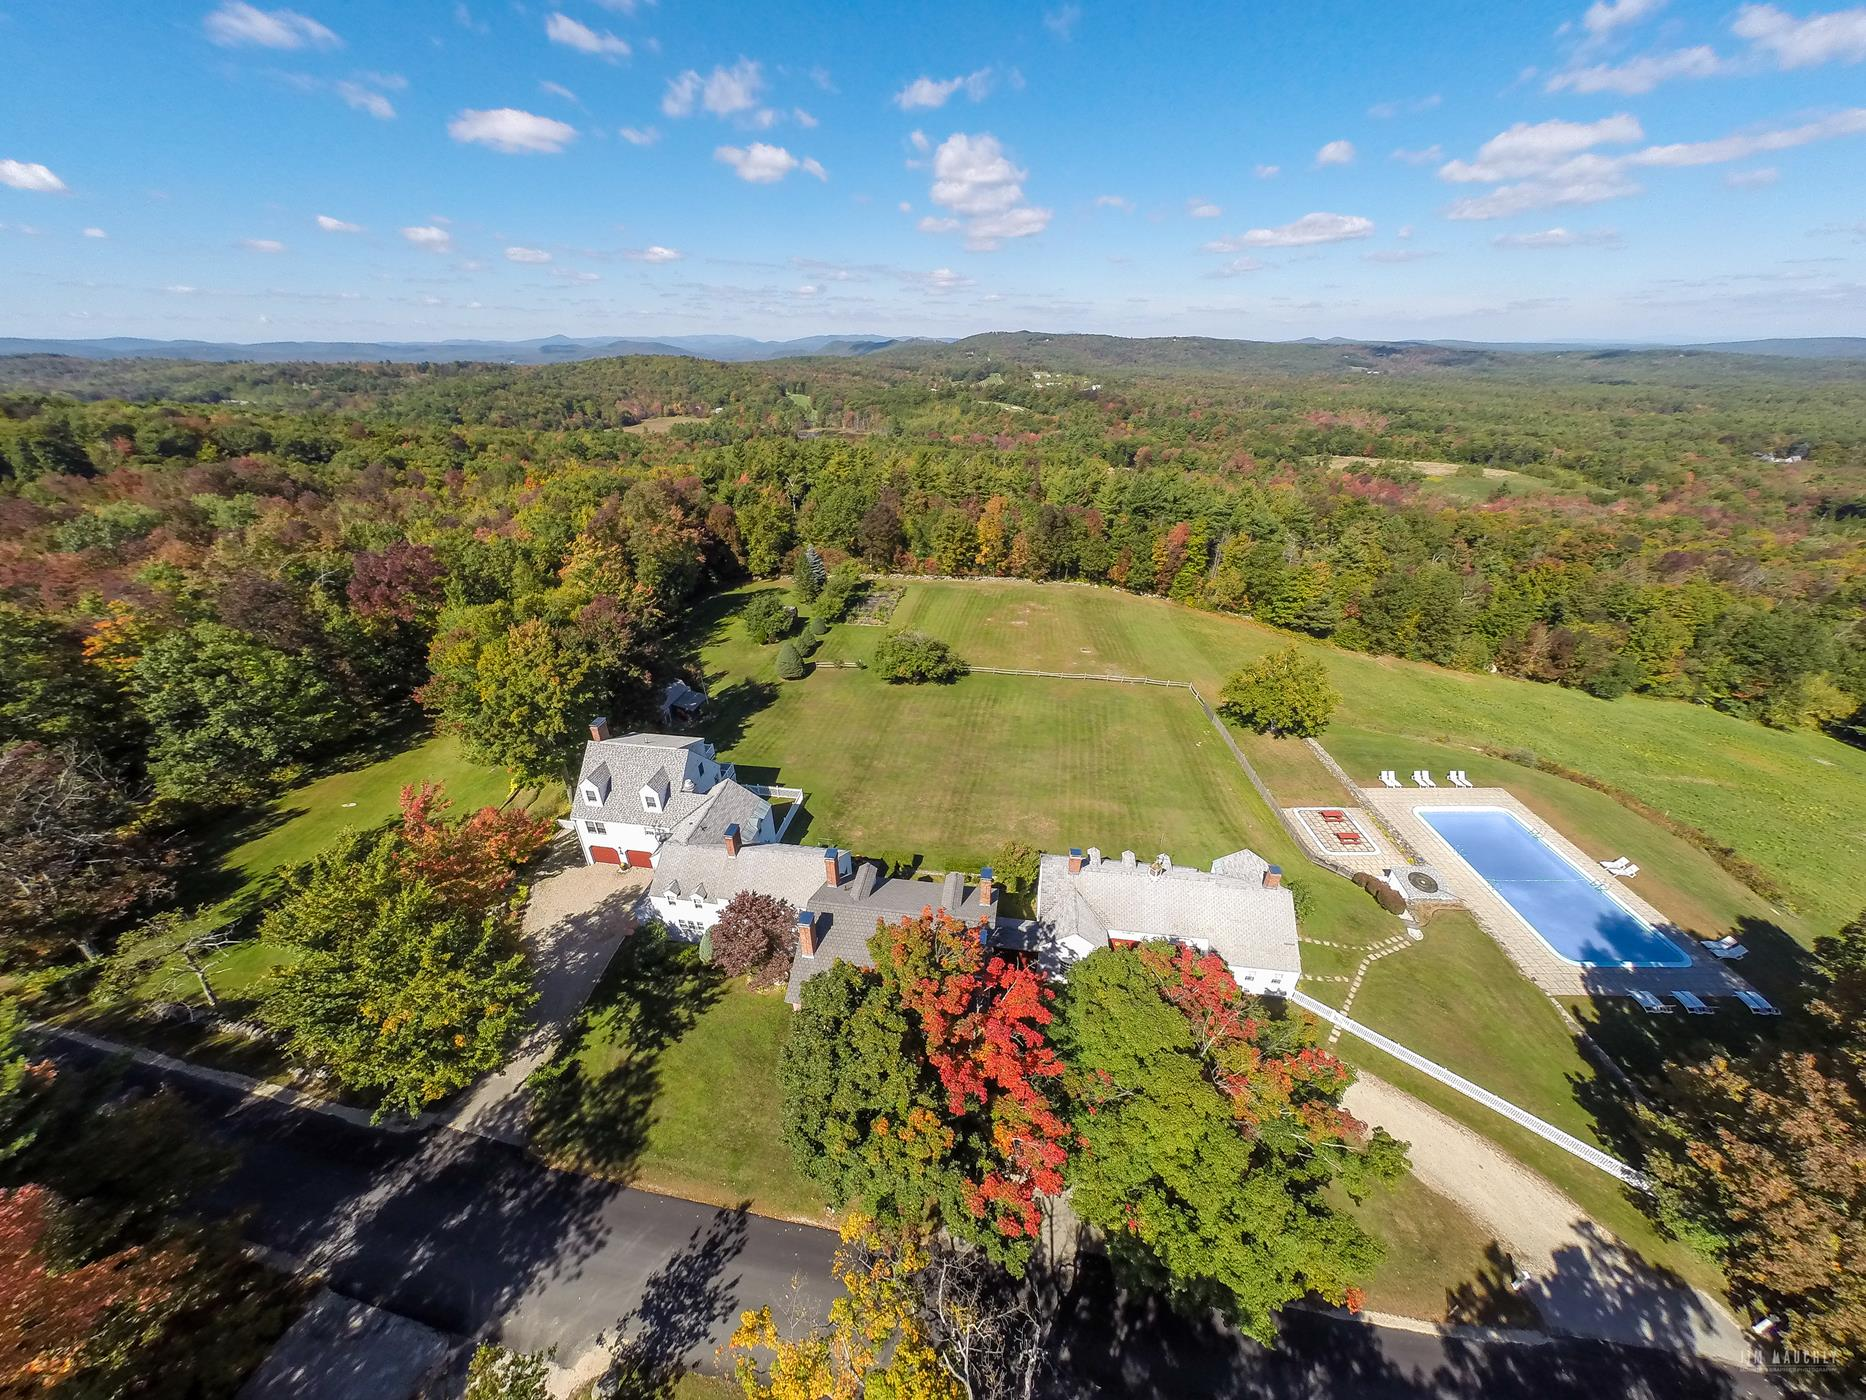 Single Family Home for Sale at Inn at Crotchet Moun 534 Mountain Rd Francestown, New Hampshire 03043 United States